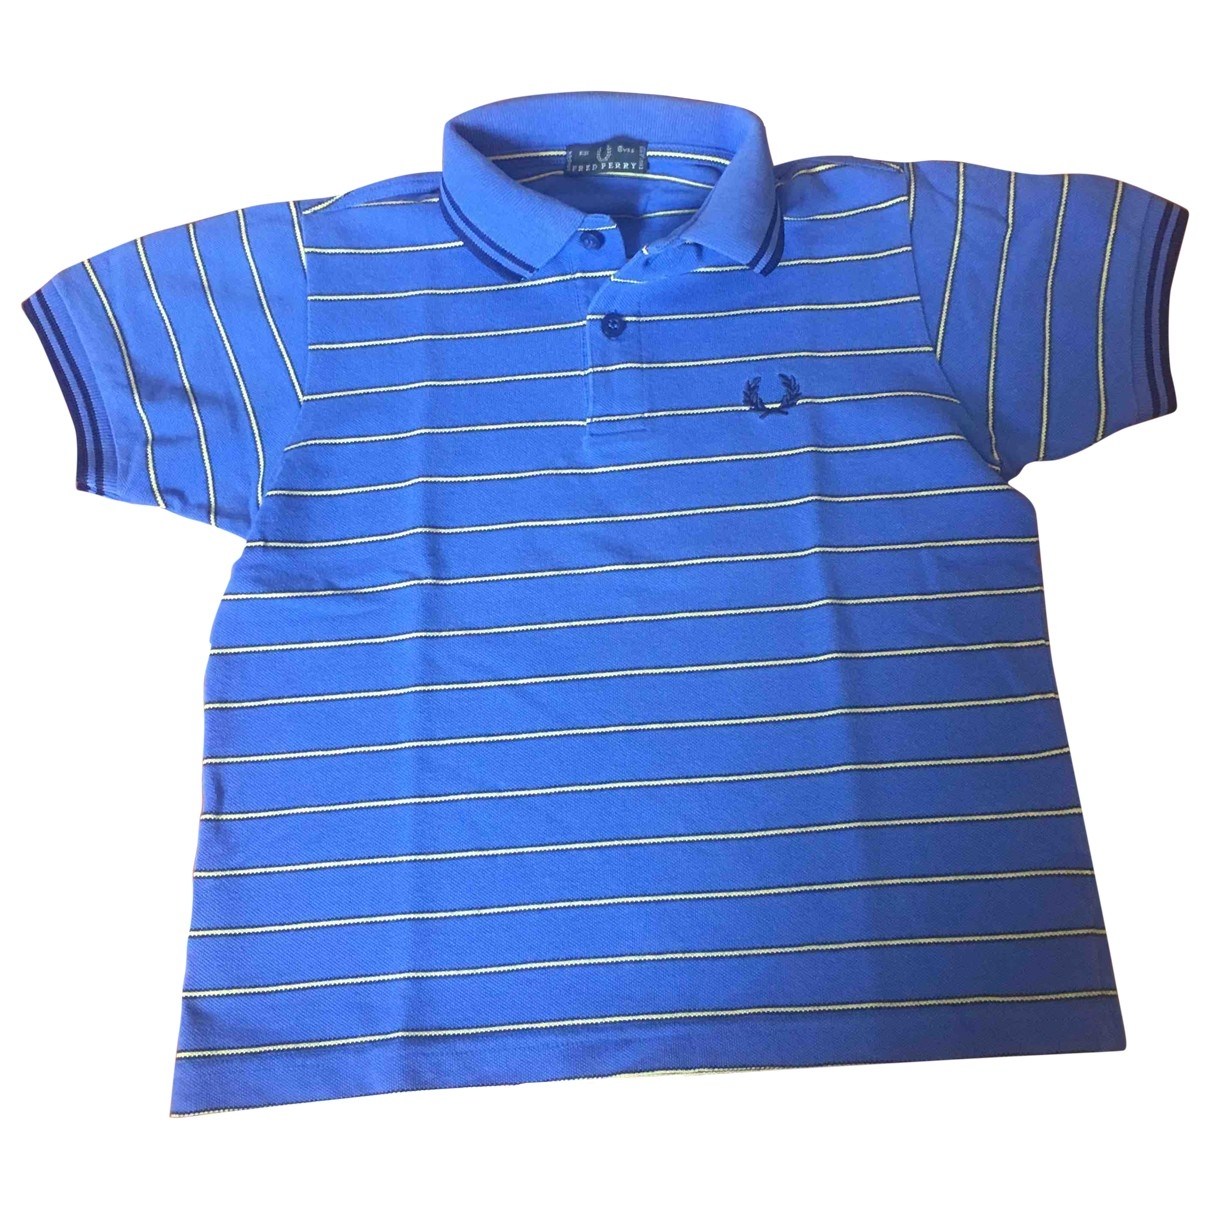 Fred Perry \N Blue Cotton  top for Kids 6 years - up to 114cm FR